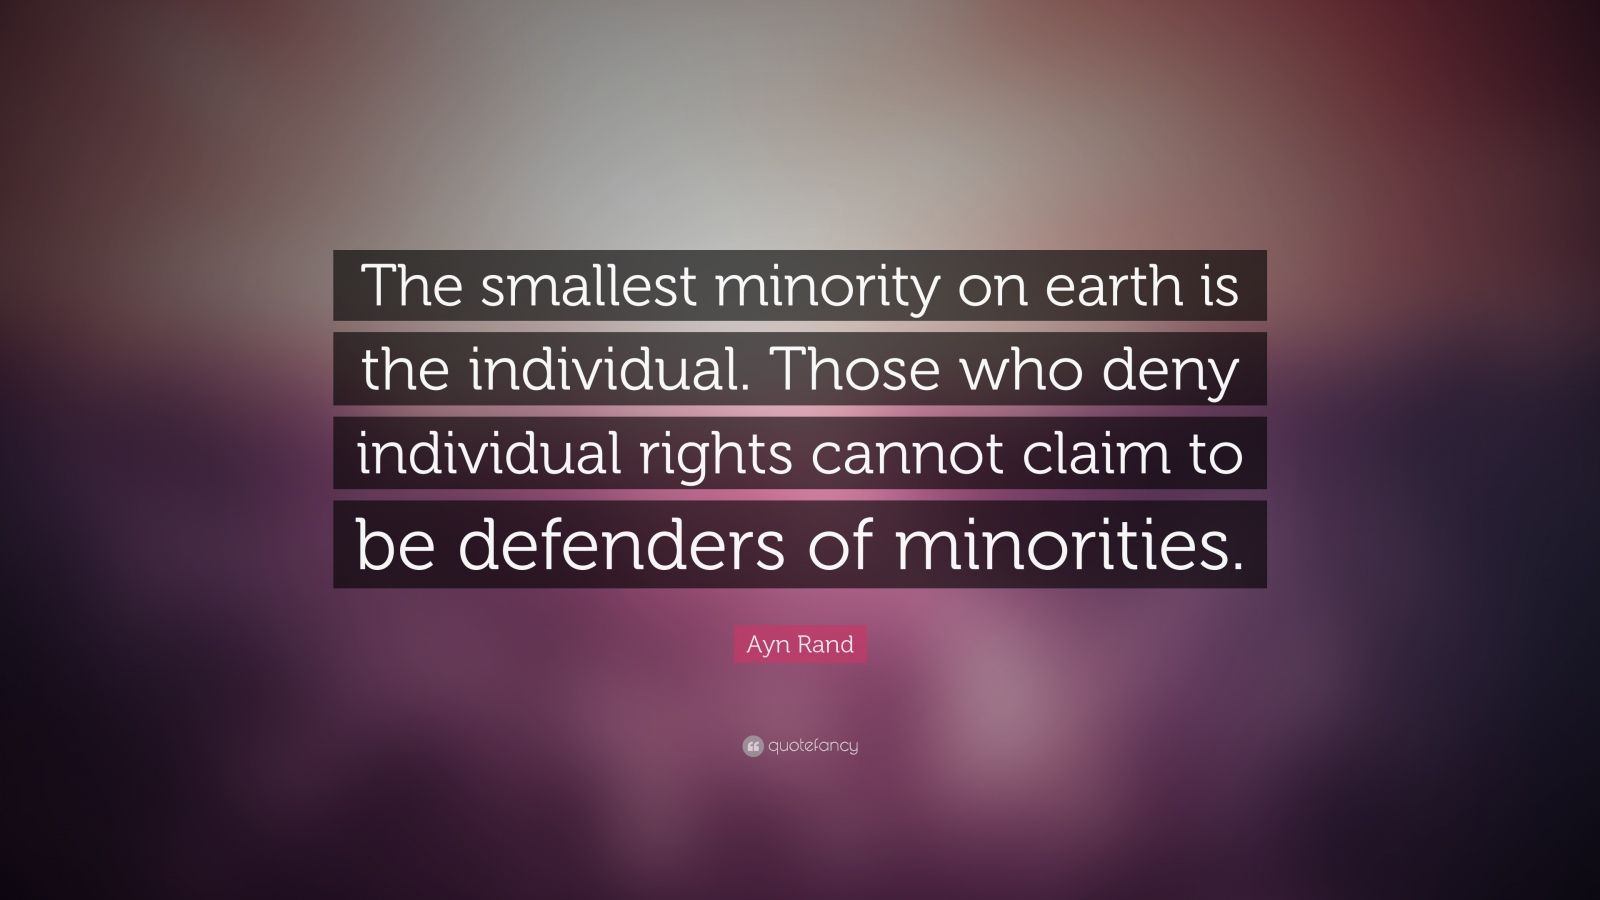 John Lennon Quotes Wallpaper Ayn Rand Quote The Smallest Minority On Earth Is The